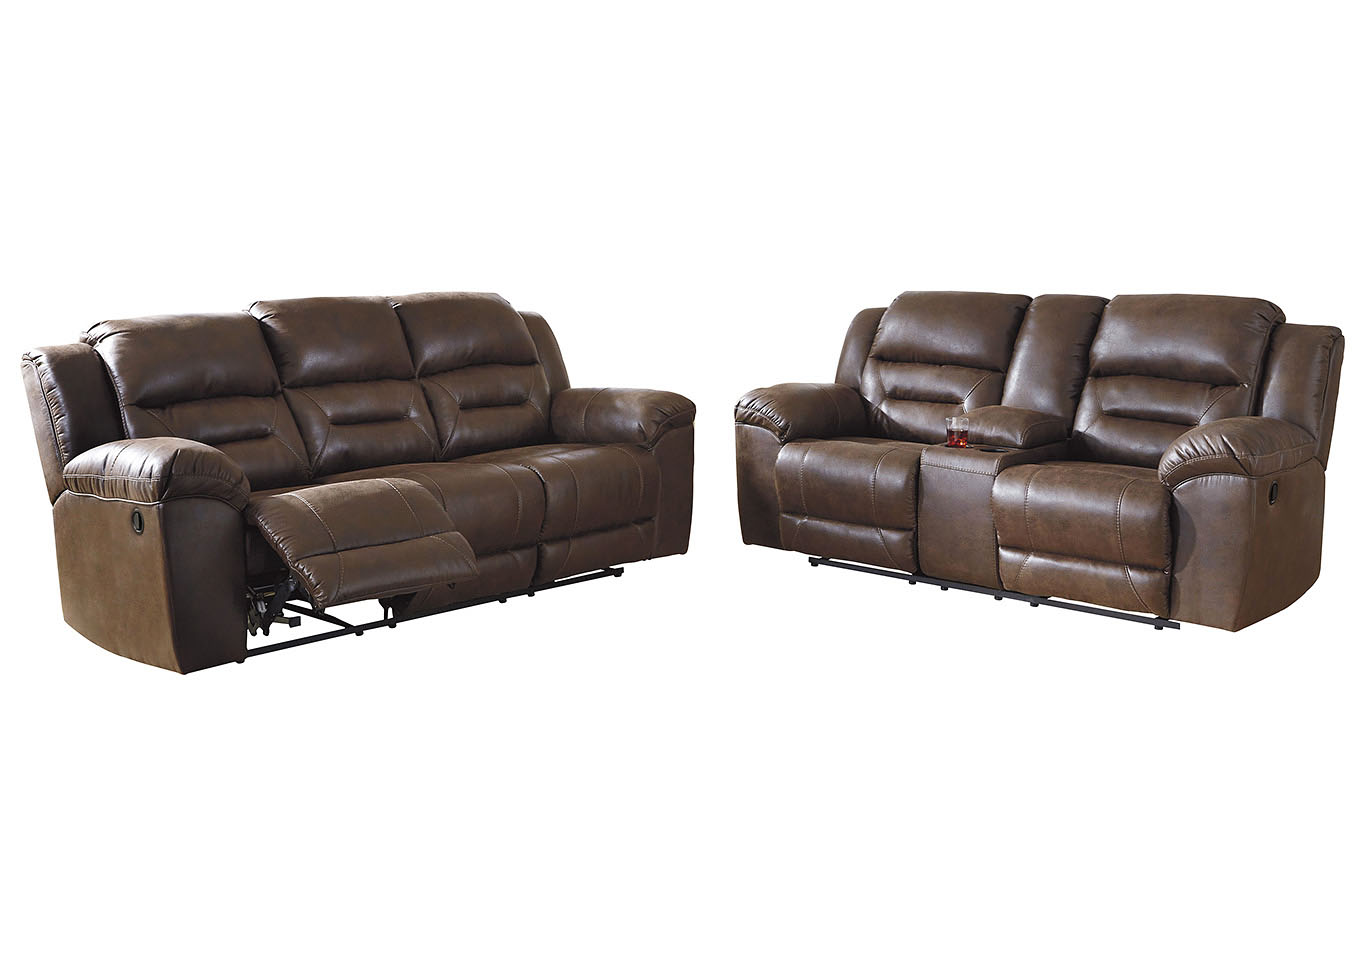 Stoneland Brown Reclining Sofa and Loveseat,Signature Design By Ashley